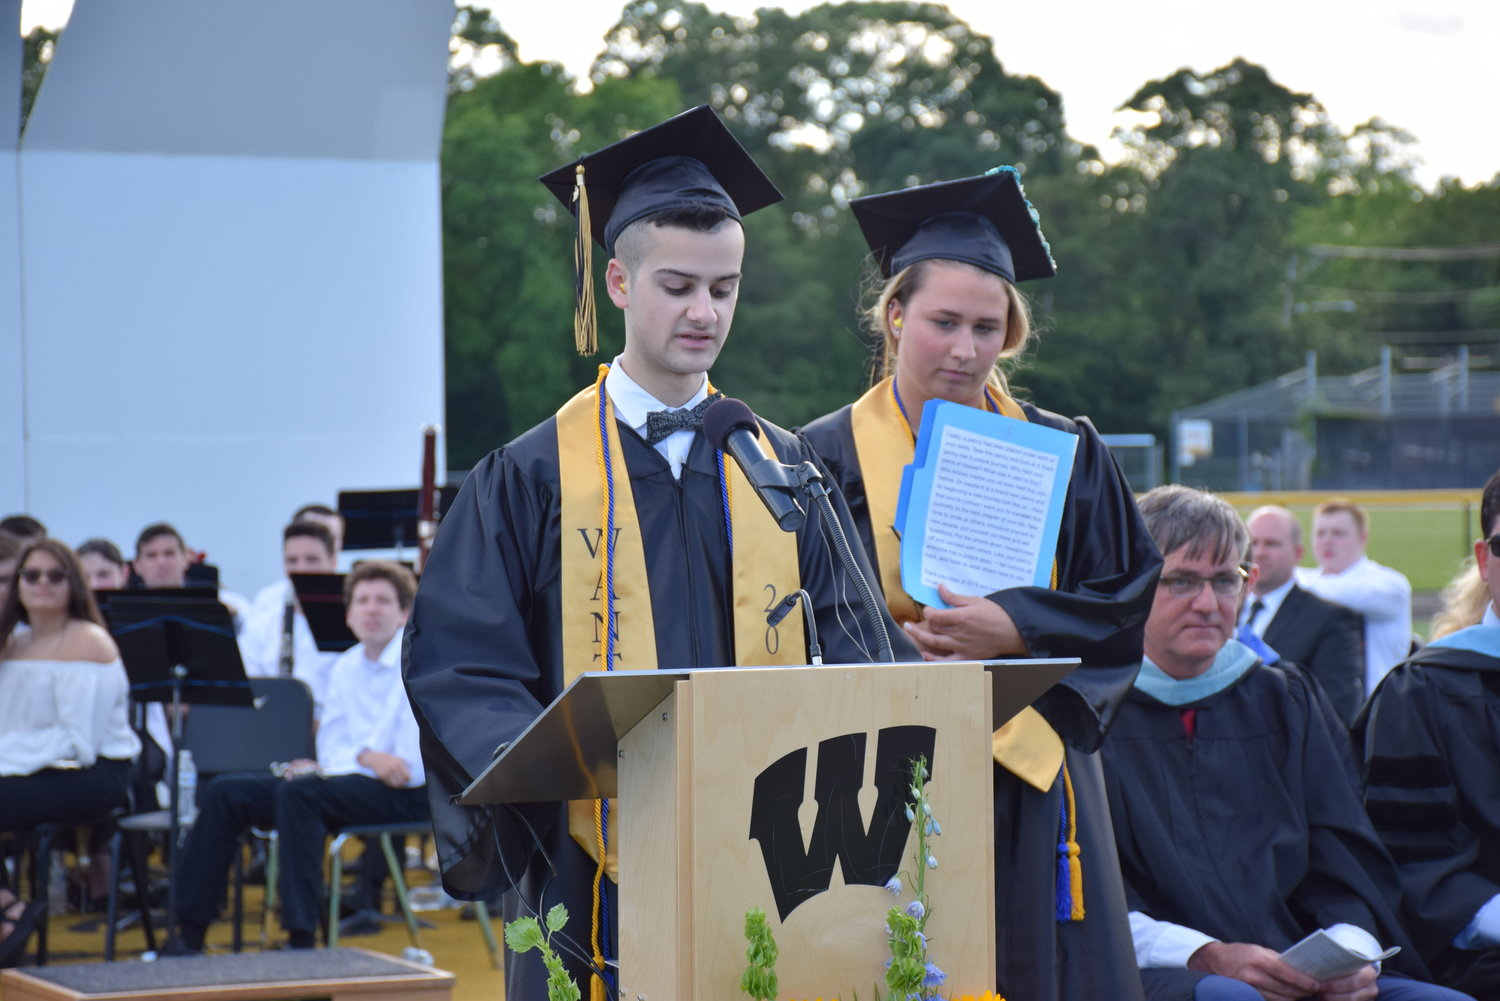 Senior Class Co-presidents Carlo Tobia and Angela Labenberg encouraged, and gave advice to, their peers during their speeches.